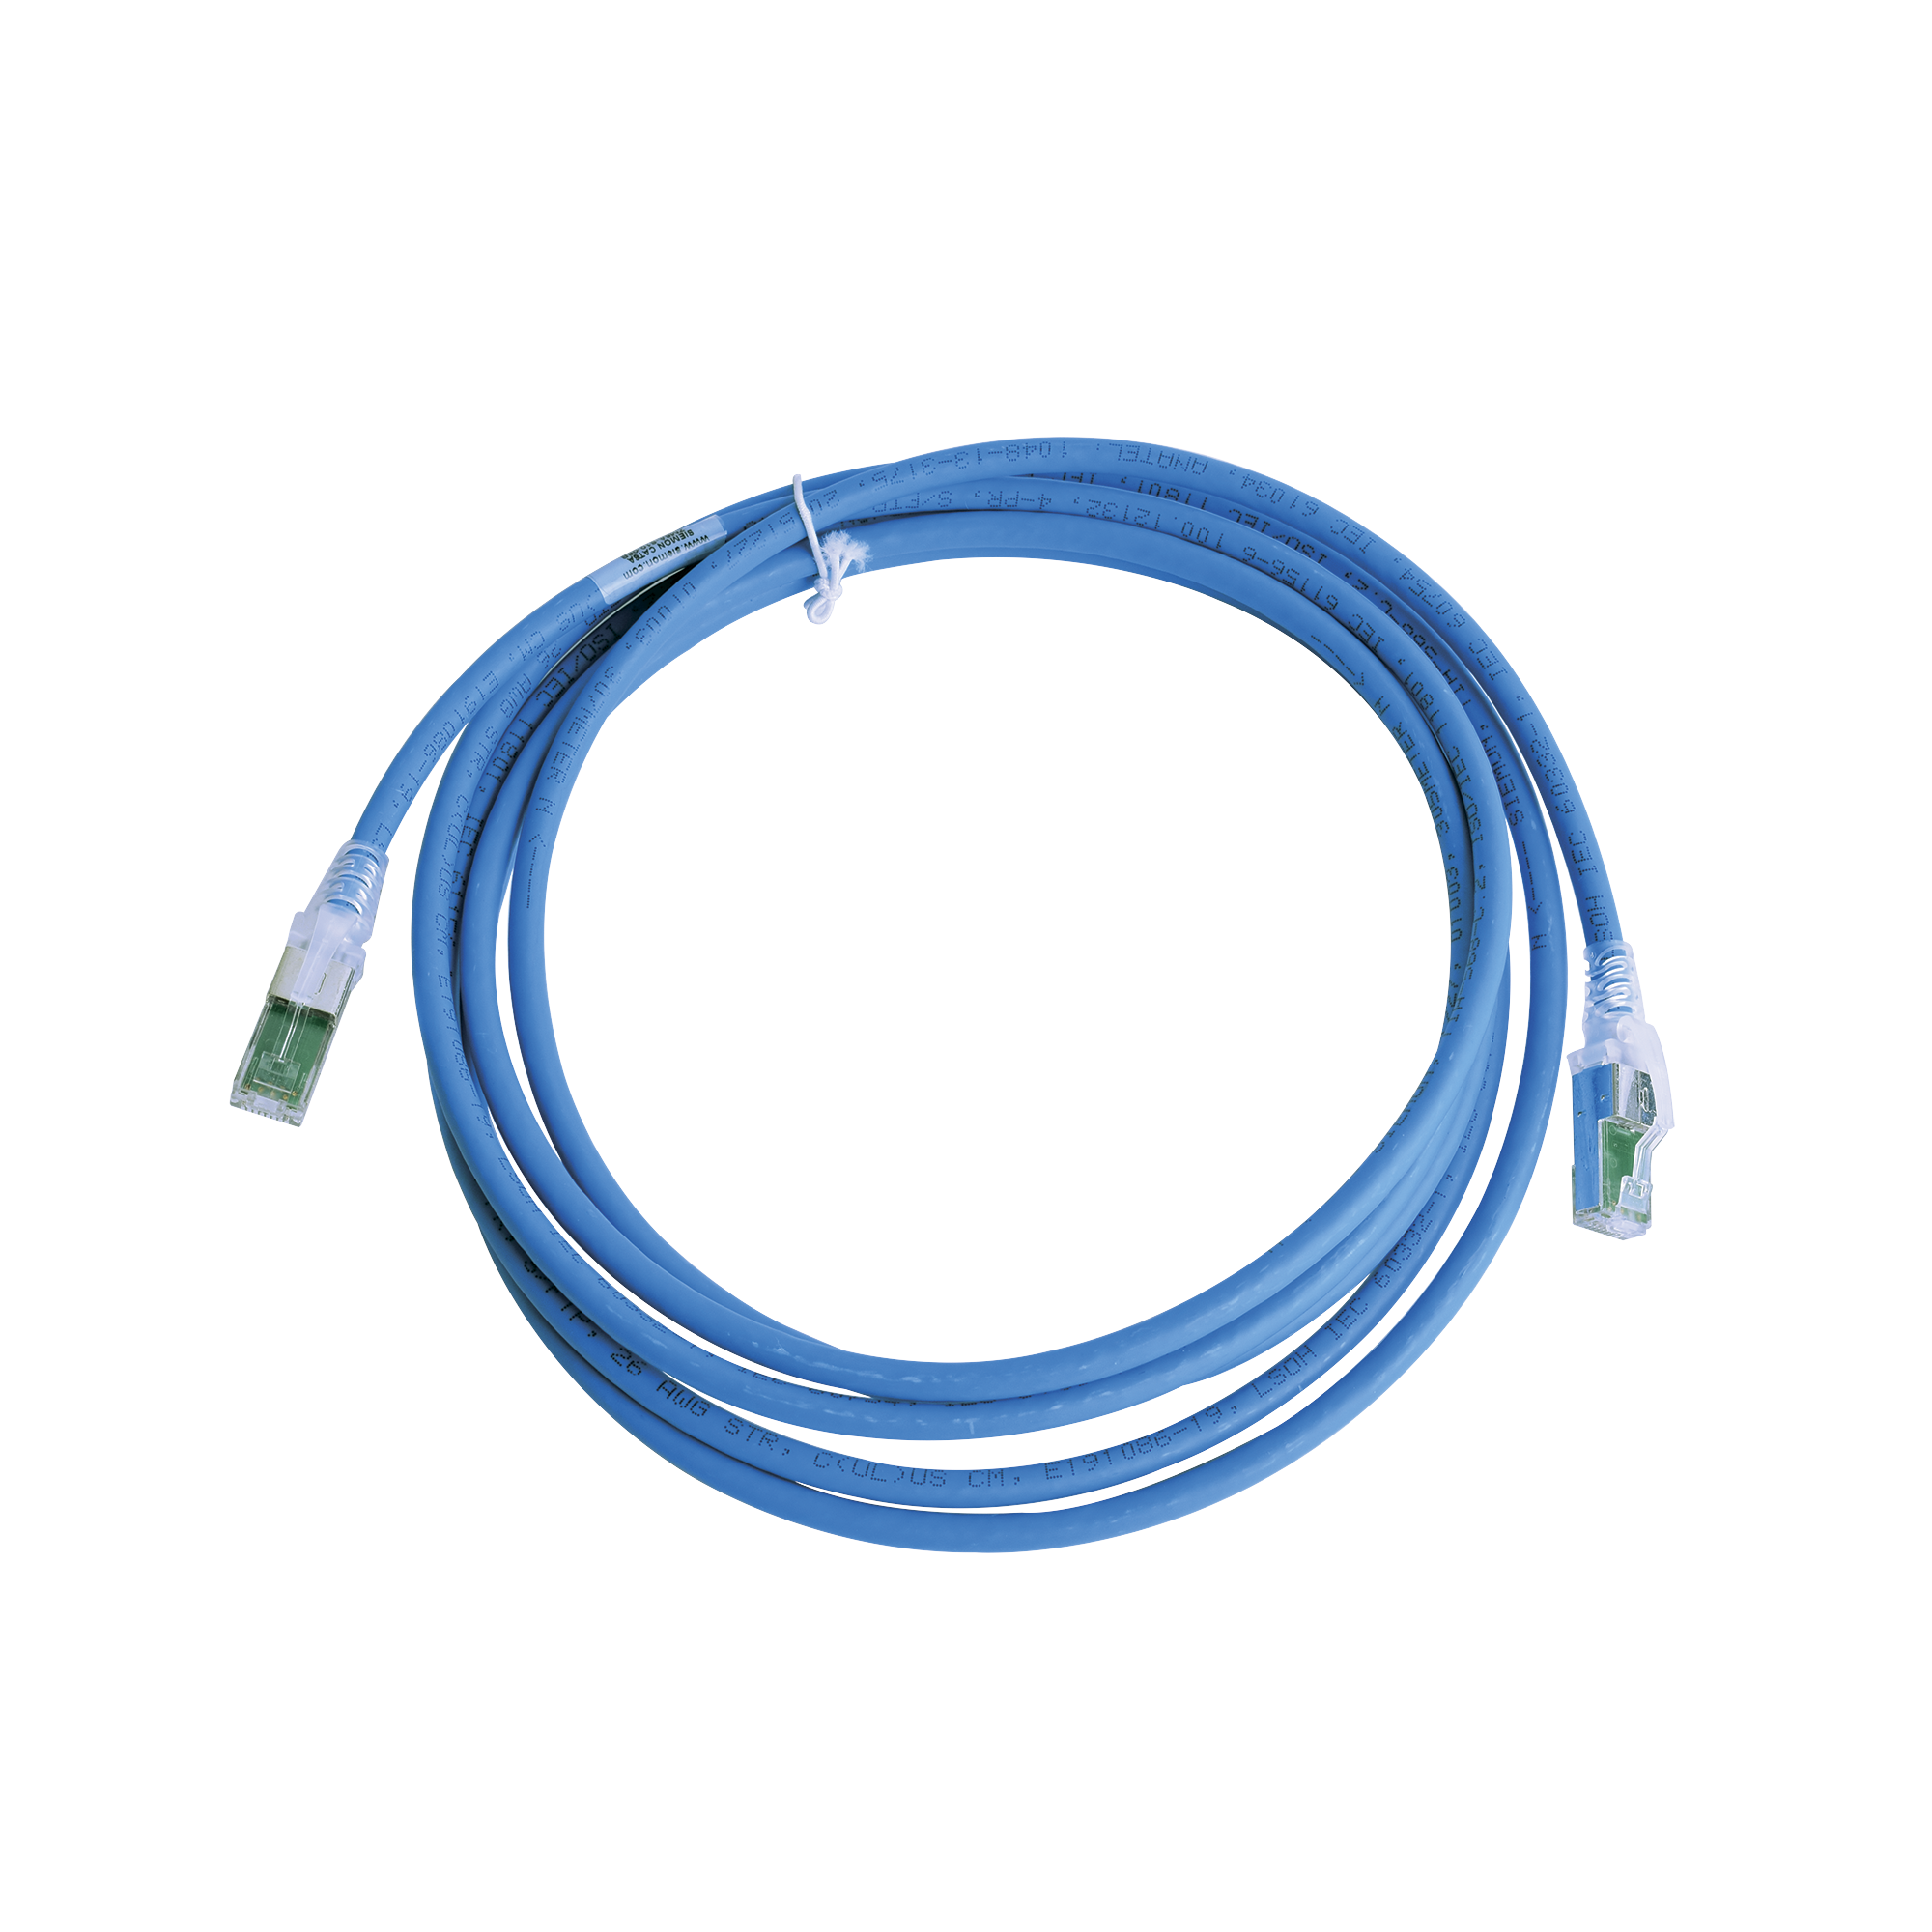 Patch Cord Z-MAX Cat6A S/FTP, CM/LS0H, 10ft, Color Azul, Versión Bulk (Sin Empaque Individual)